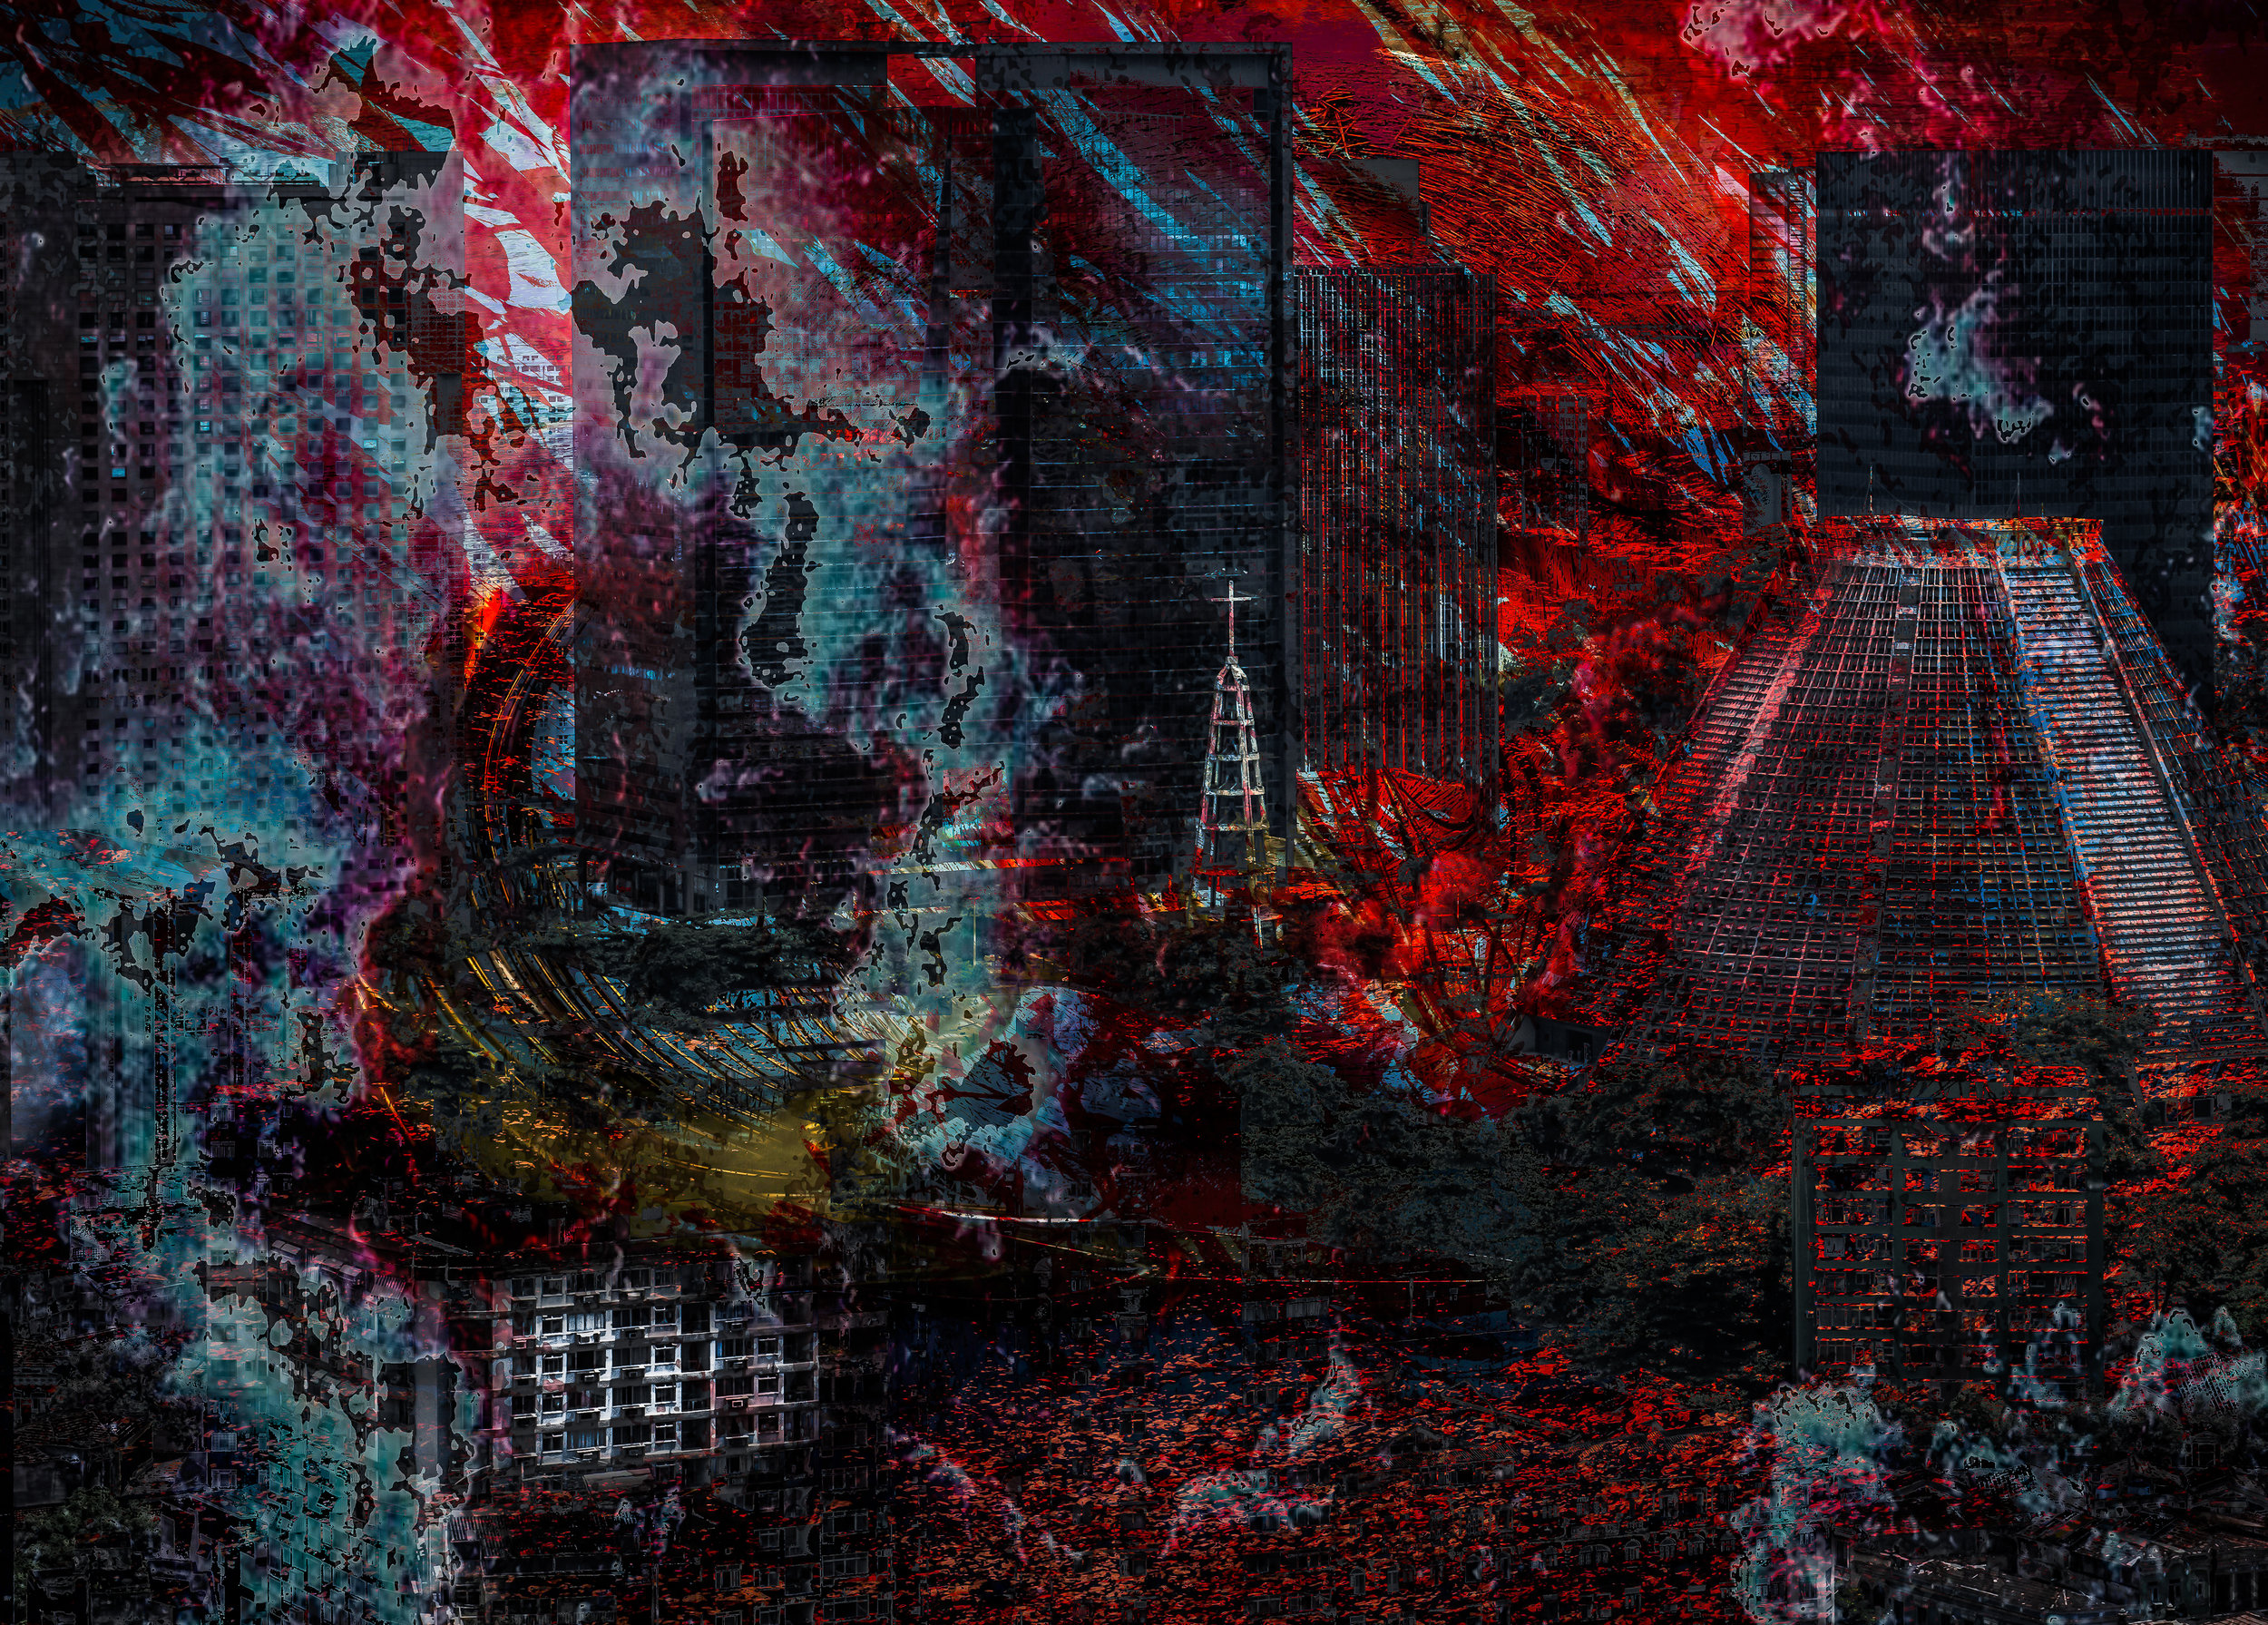 Moment of reflexion, 120 x 80cm, edition: 1/5